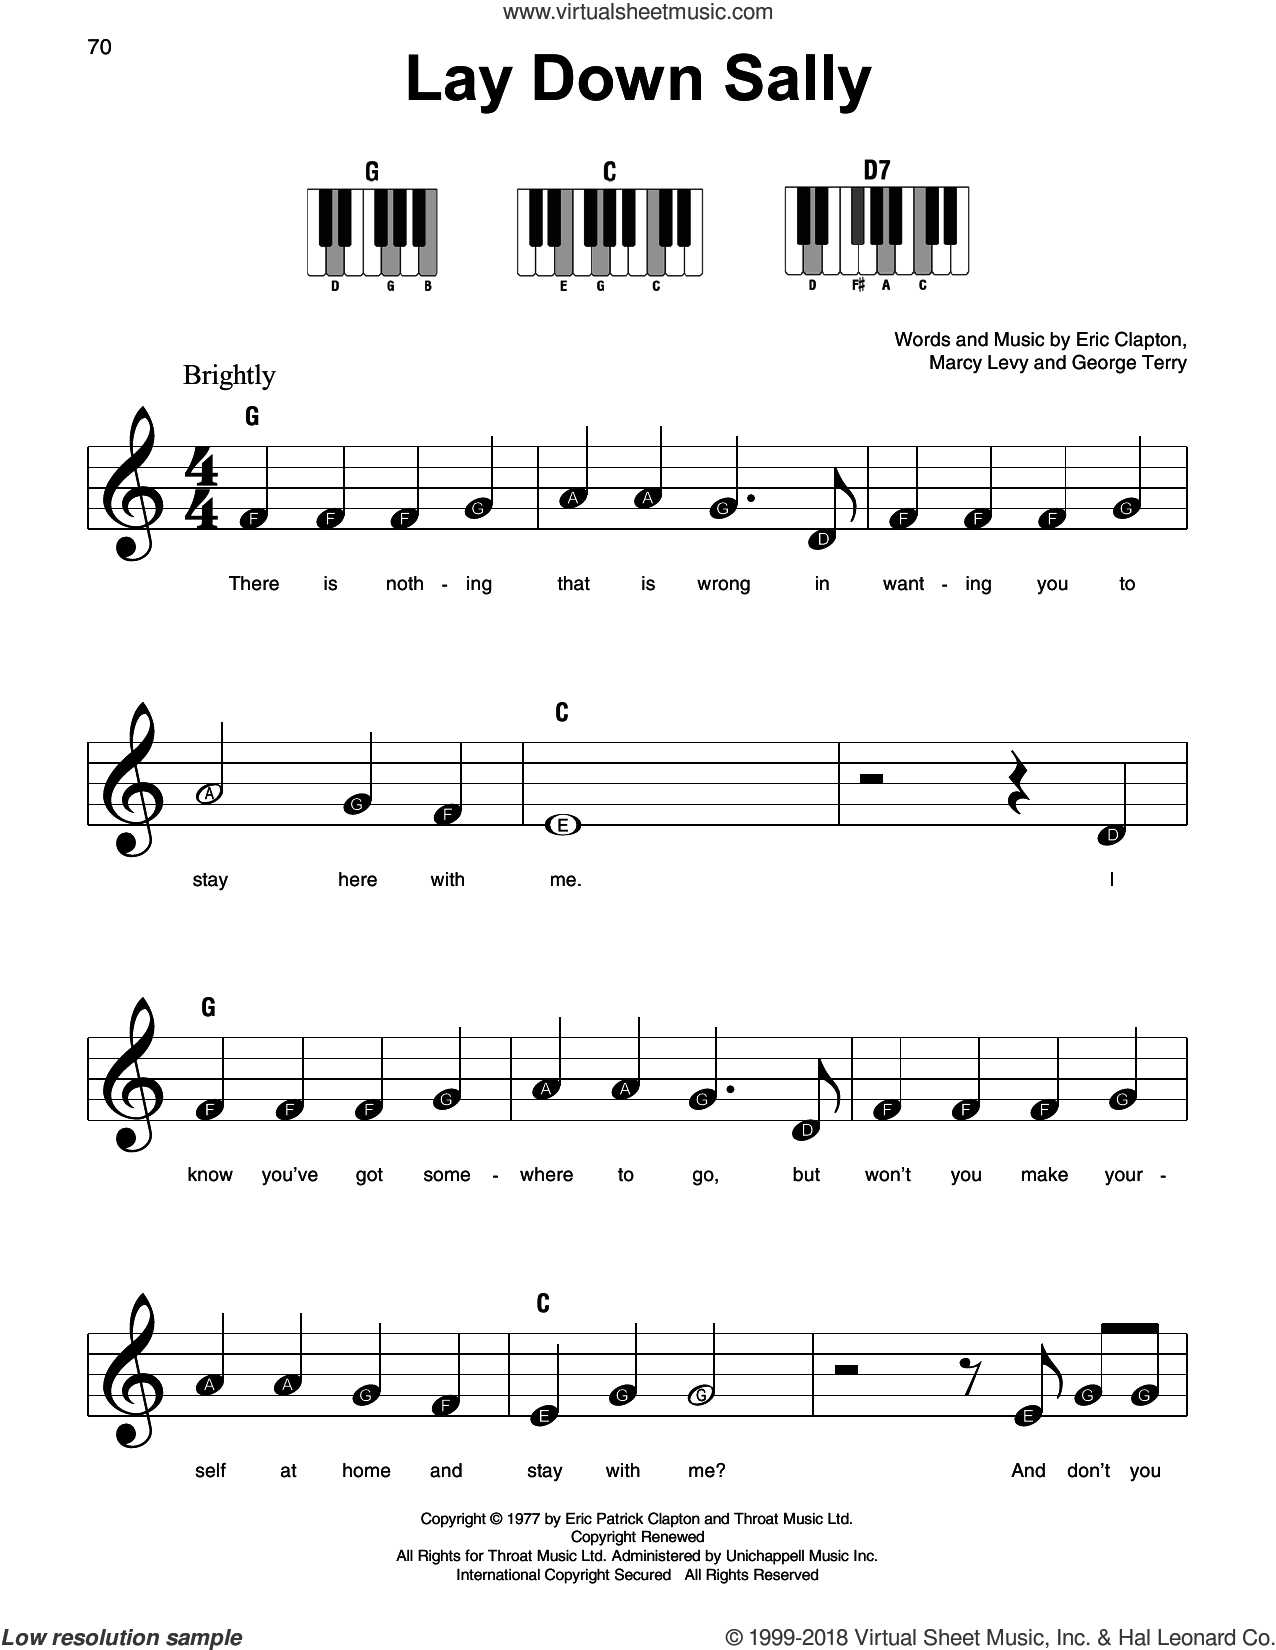 Lay Down Sally sheet music for piano solo by Eric Clapton, George Terry and Marcy Levy, beginner skill level